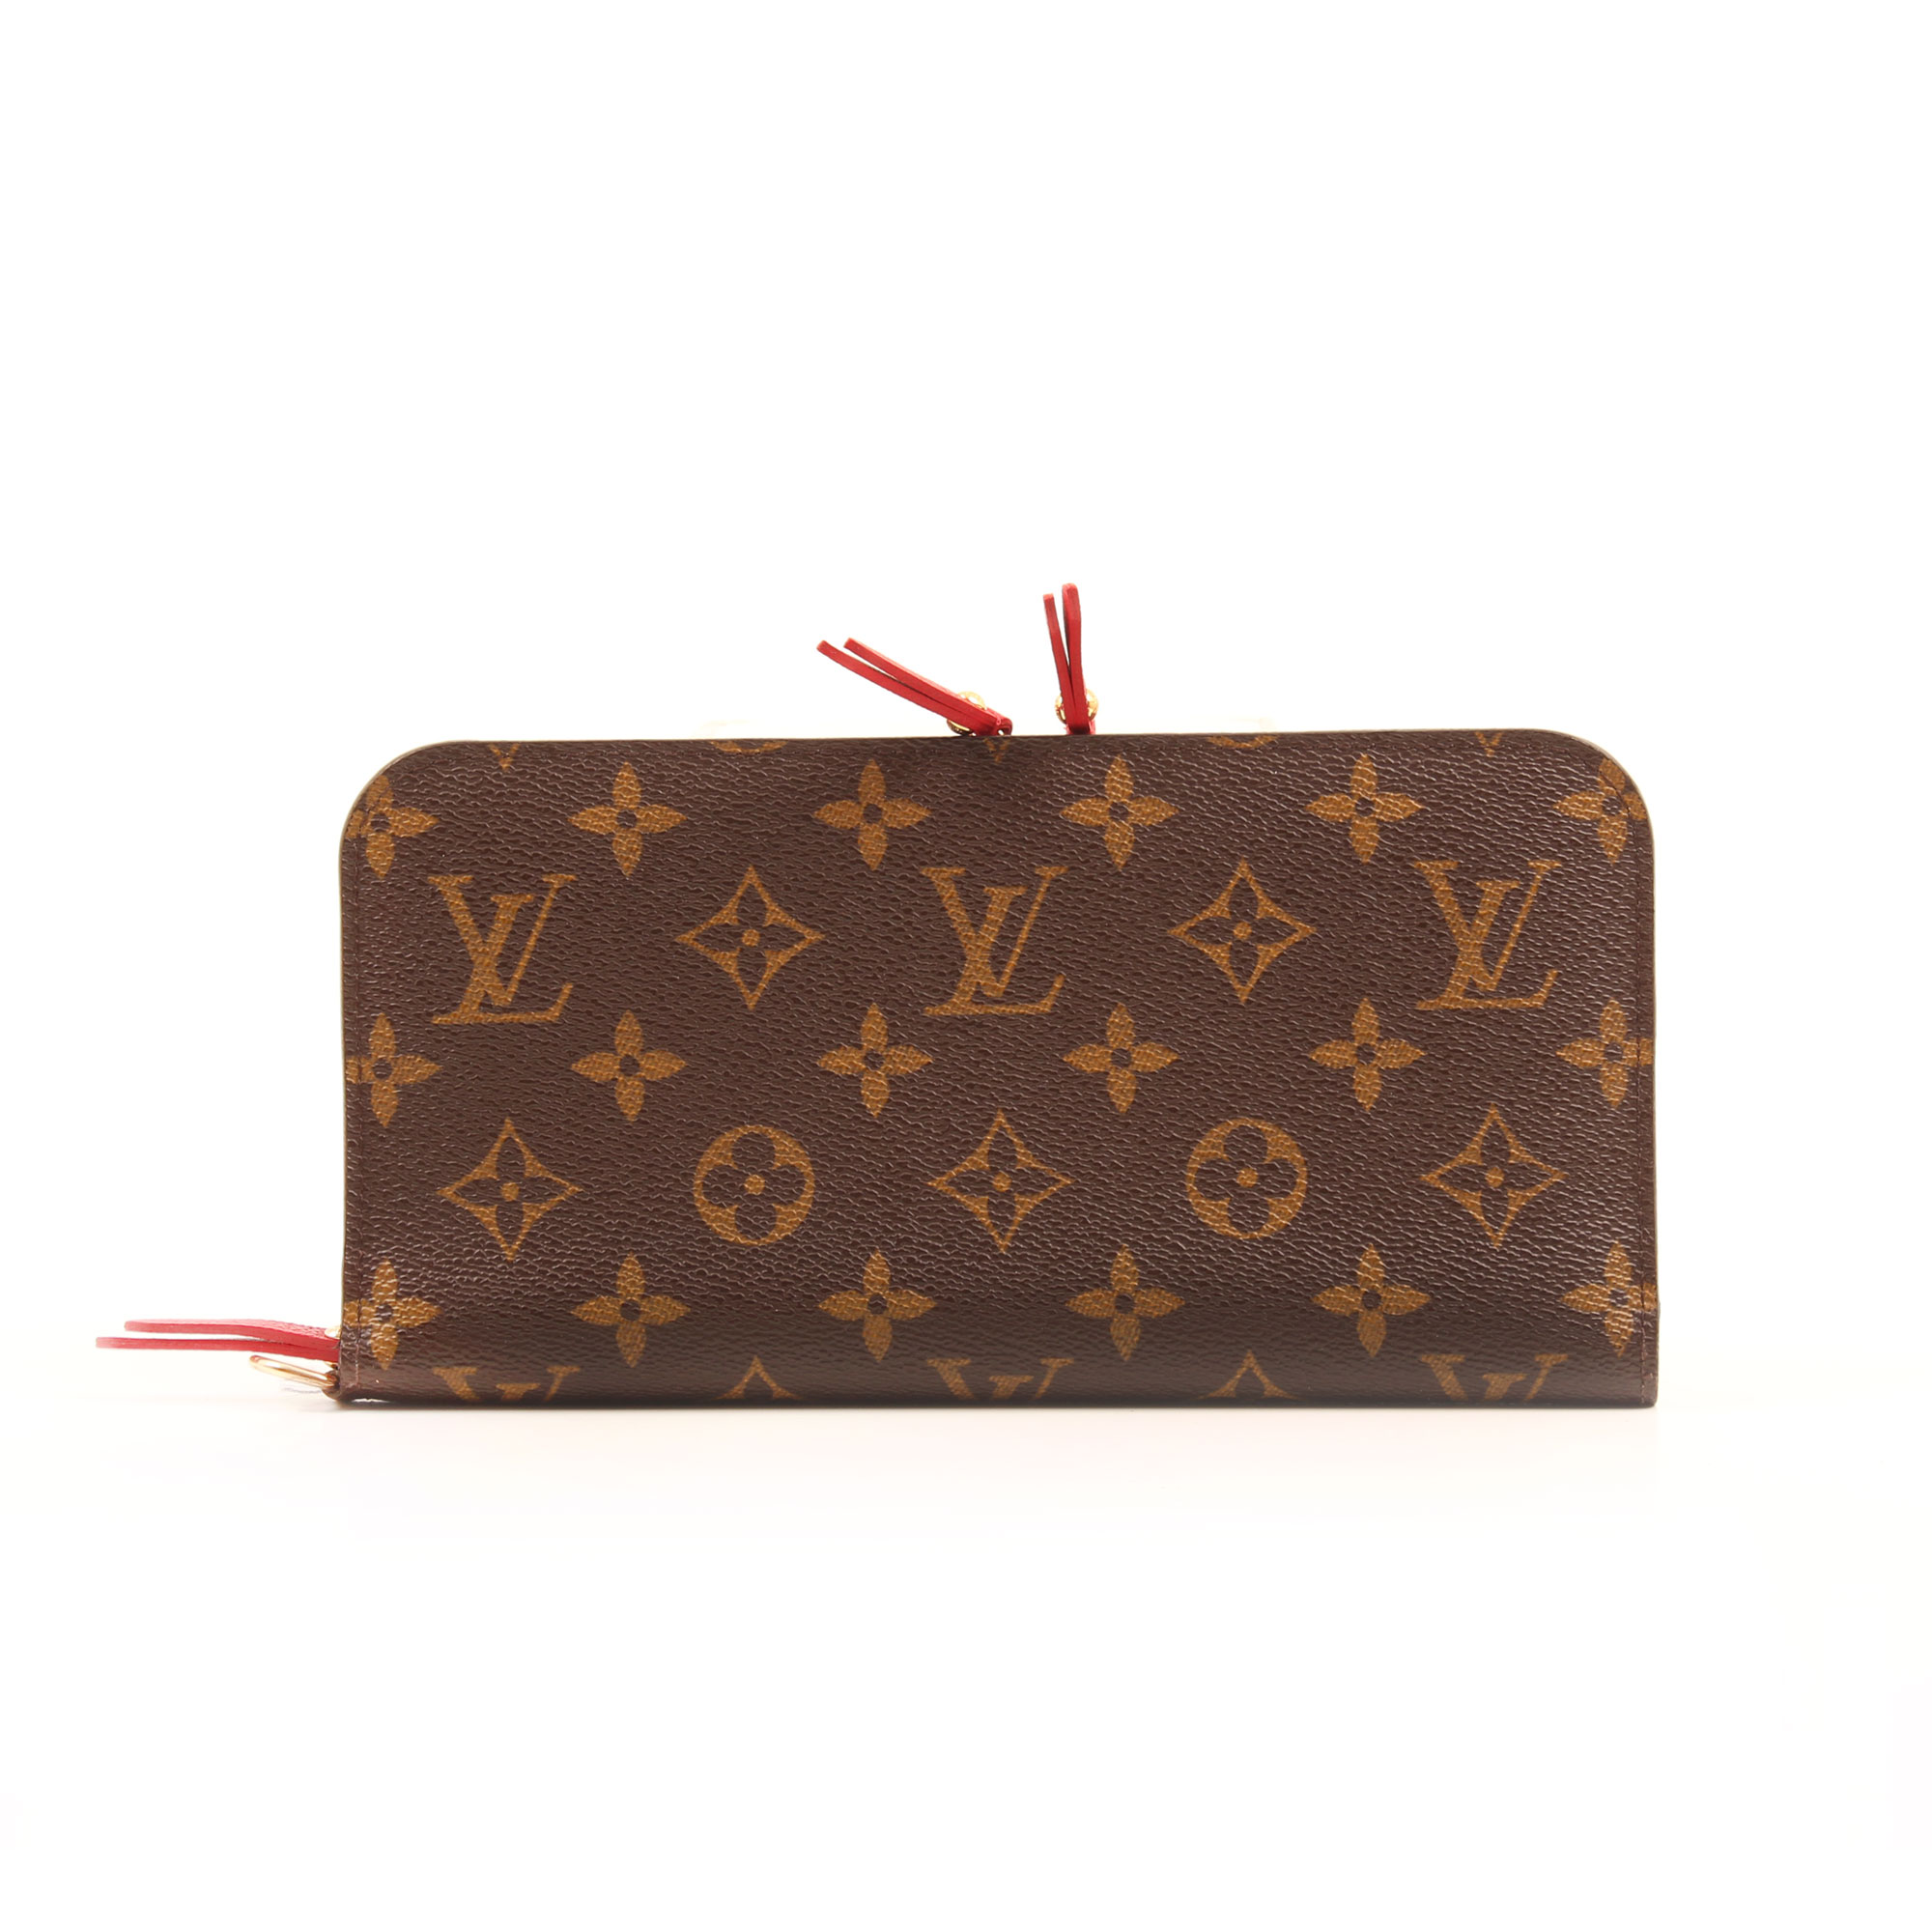 Imagen de la cartera de louis vuitton insolite monogram rojo frontal